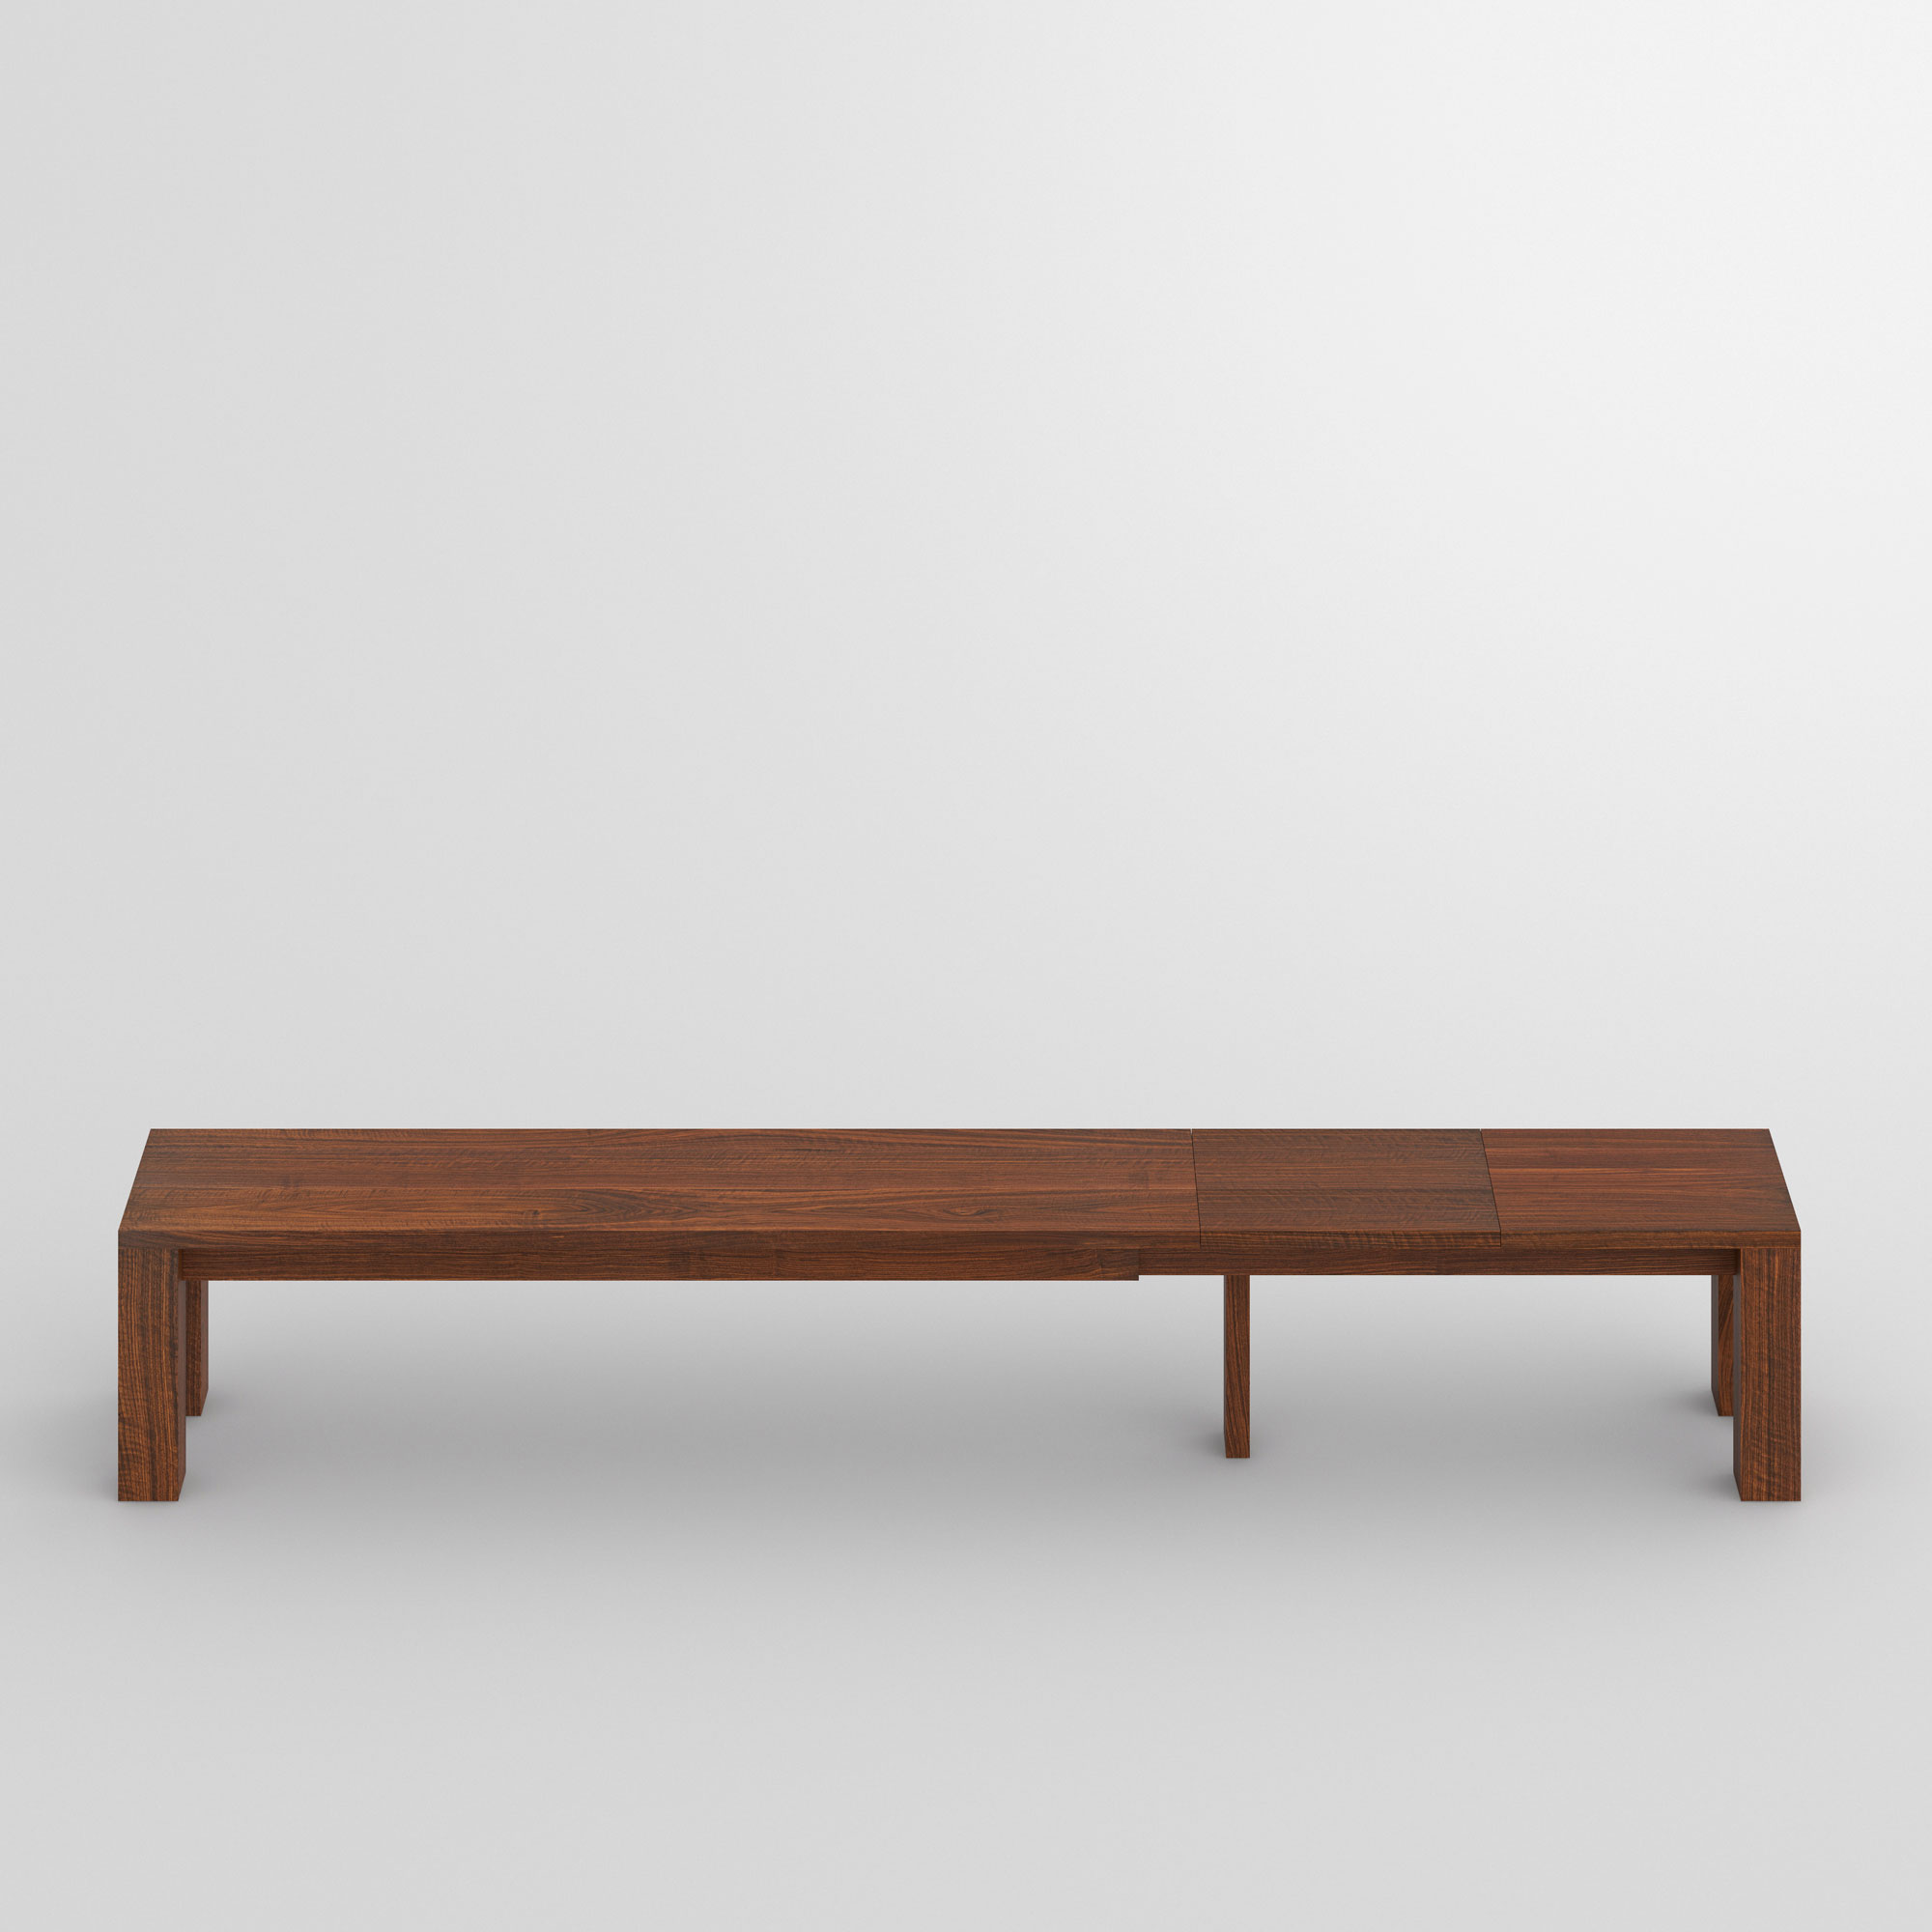 Extendable Bench CUBUS EP 3 cam2 custom made in solid wood by vitamin design